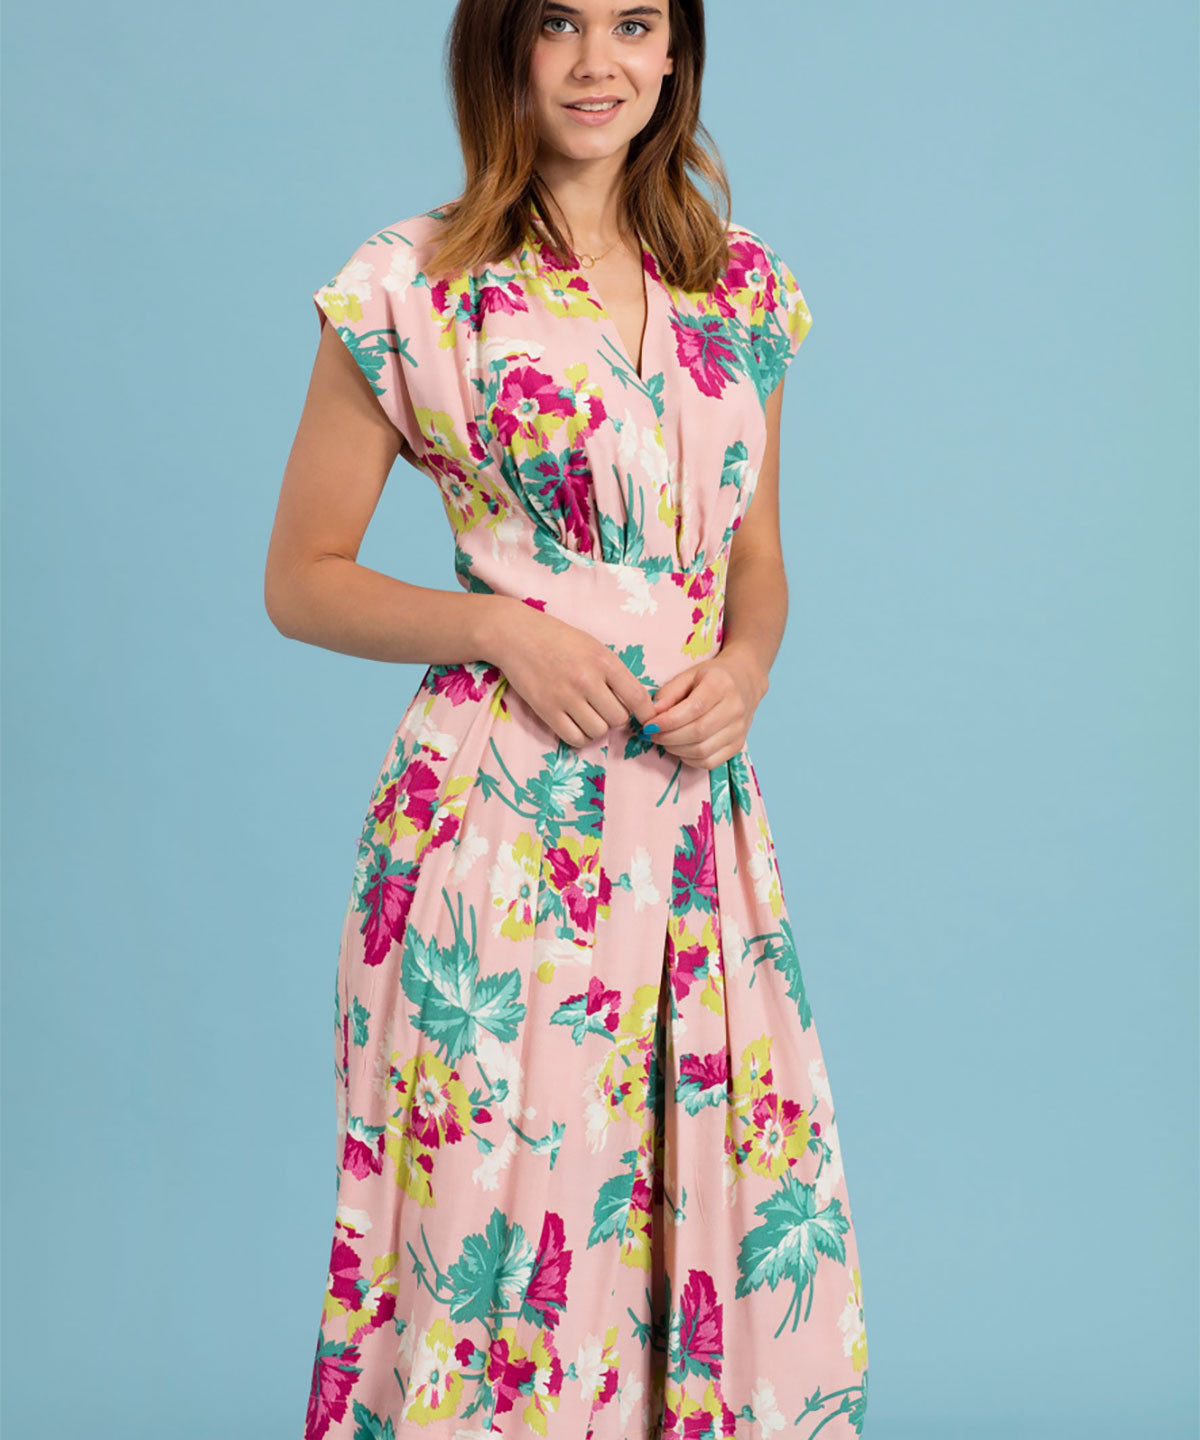 Emily-and-fin-flora-dress-2